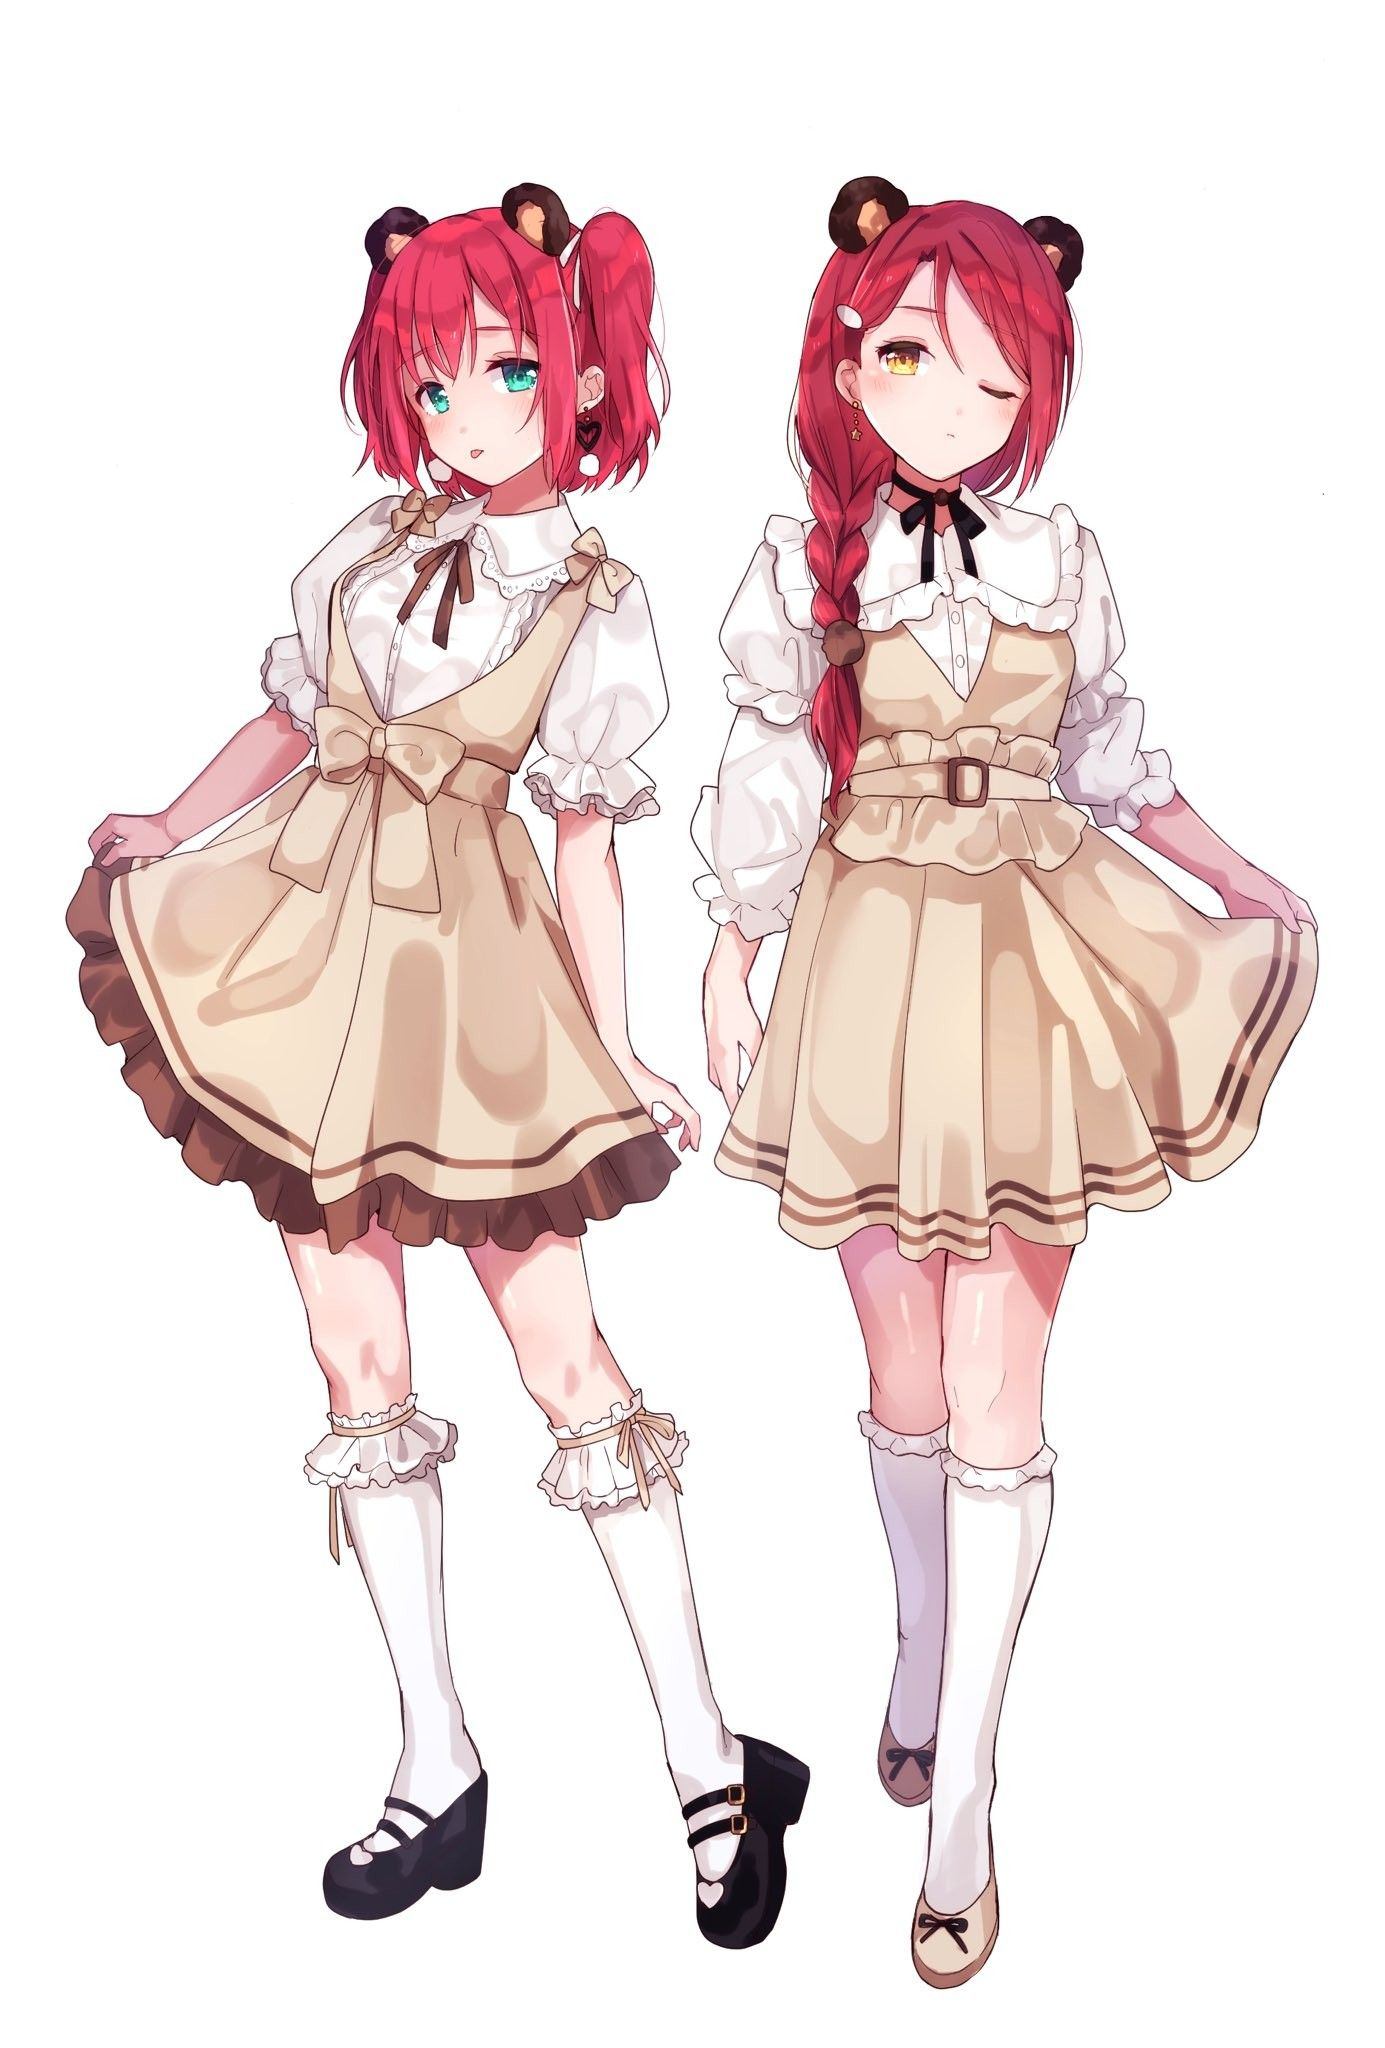 Love live image by SugarMint💕 in 2020 Anime, Art, Idol